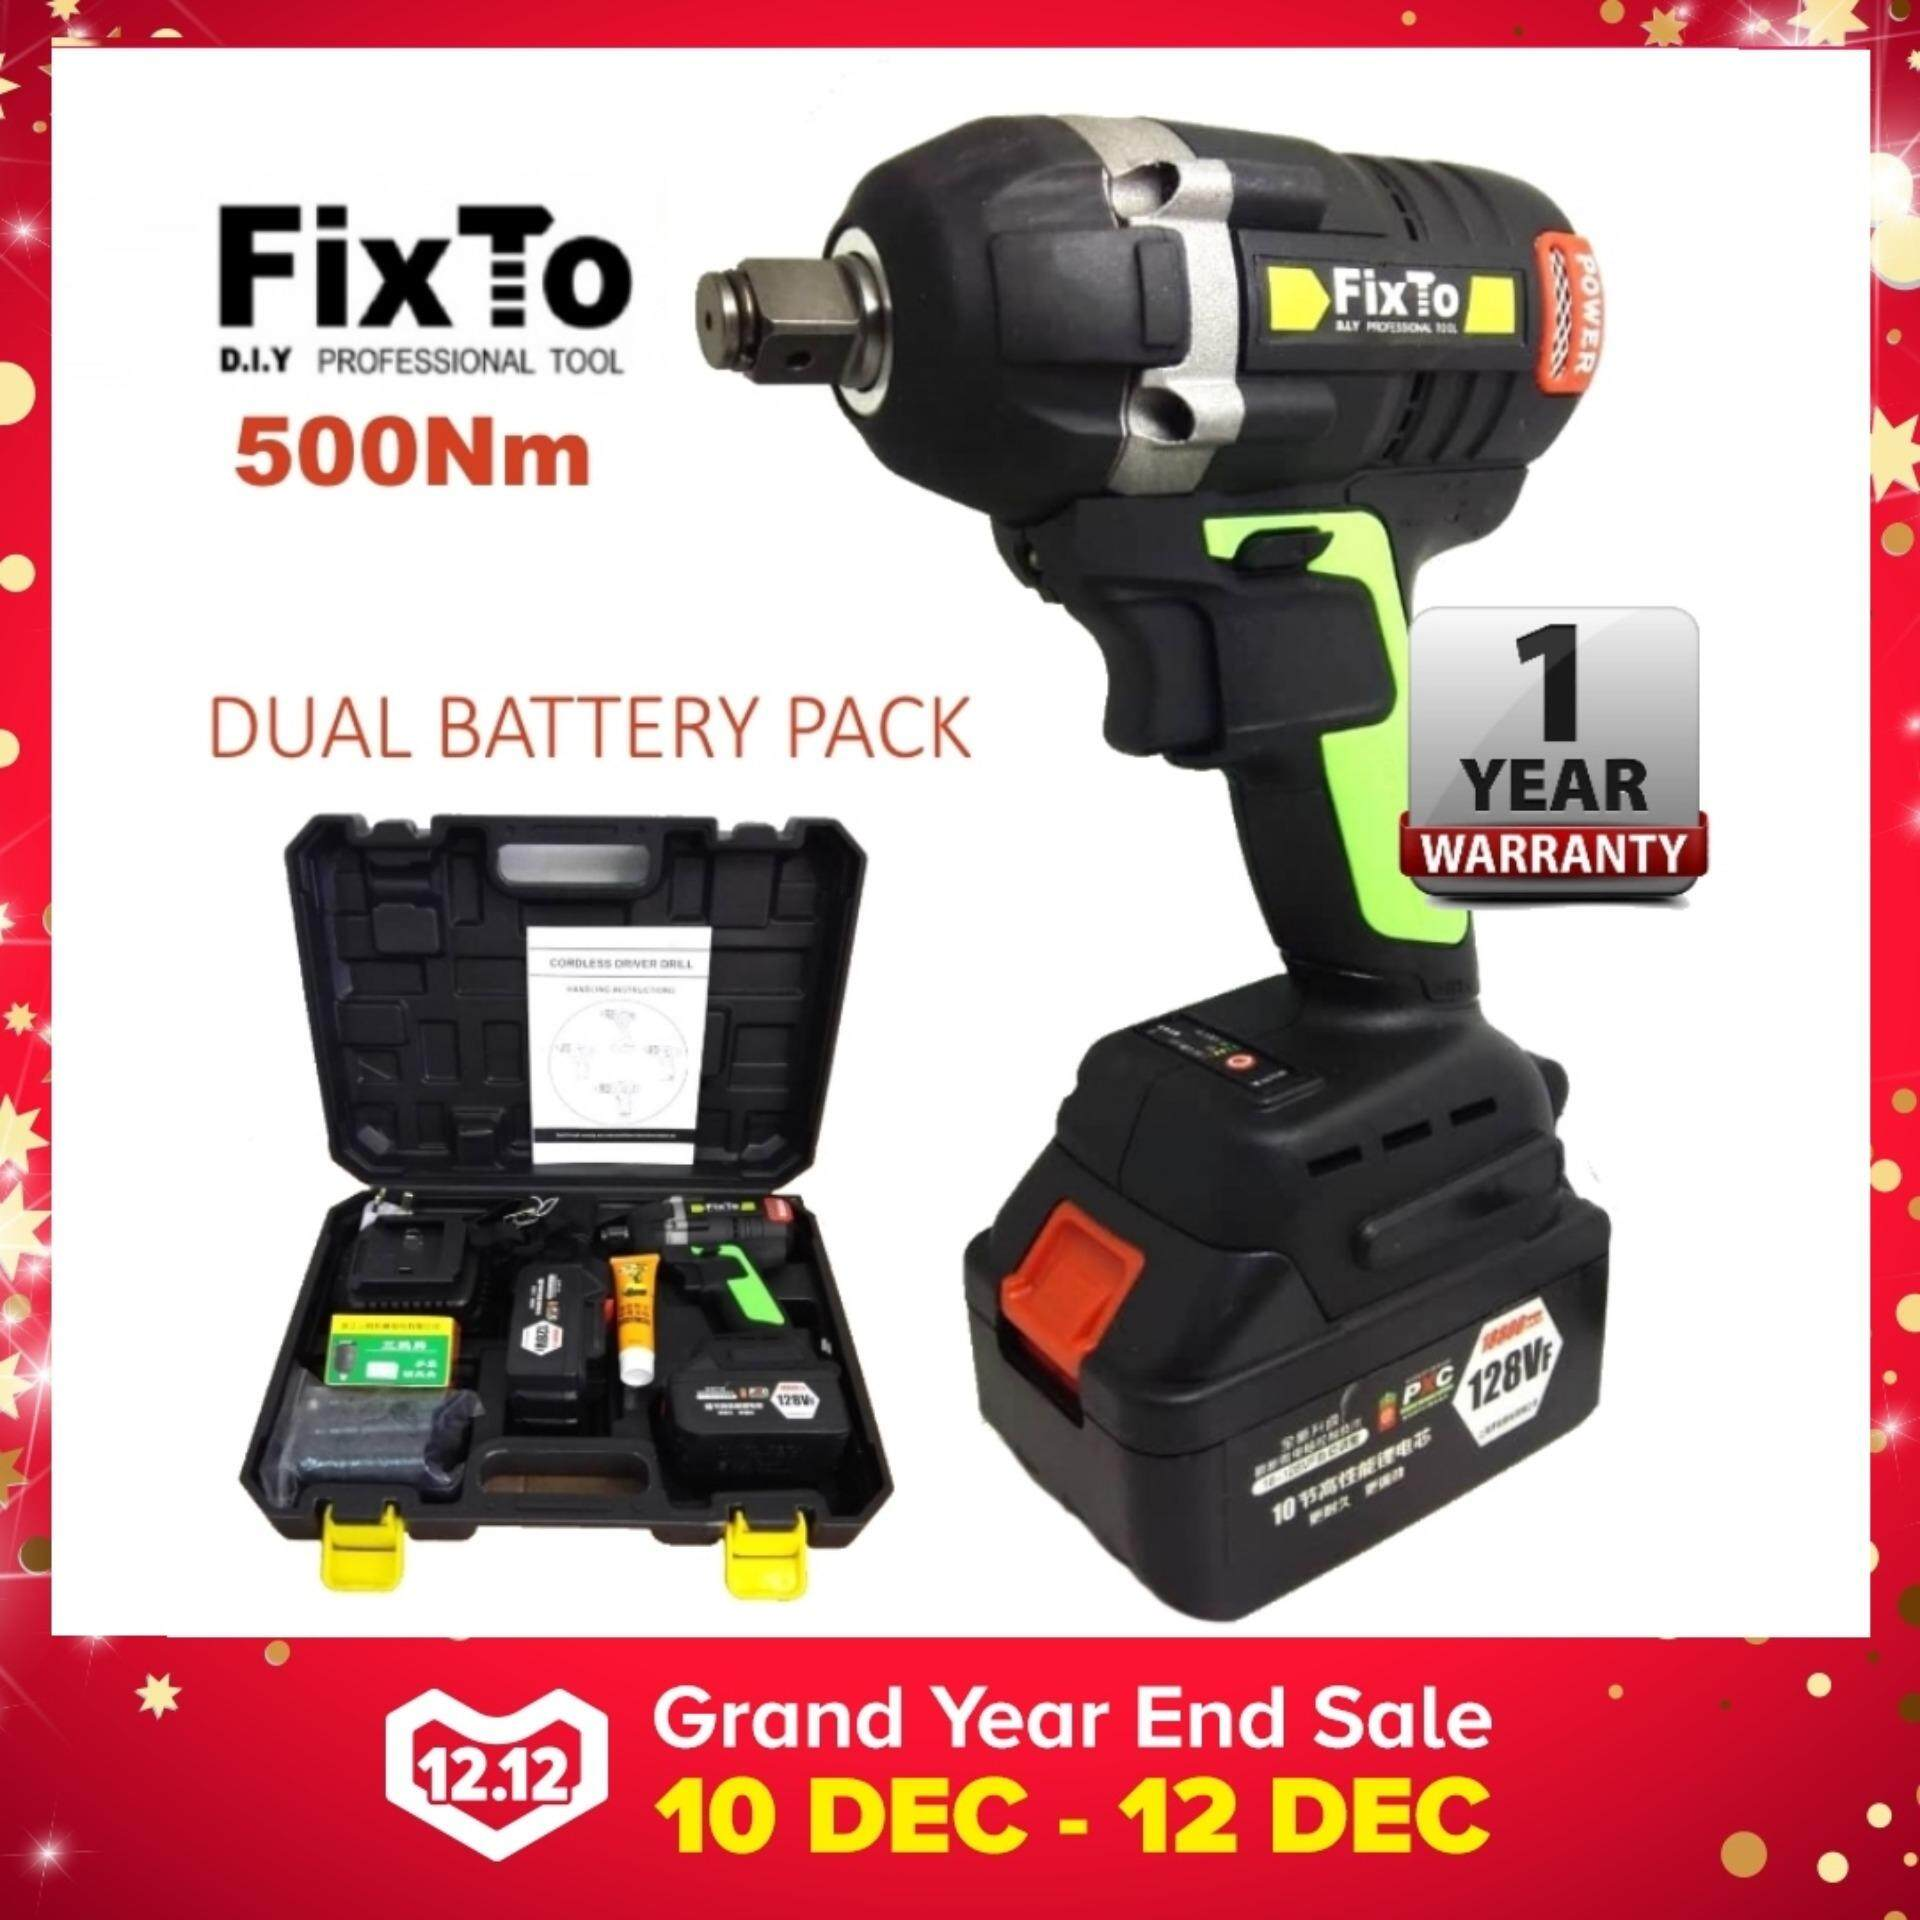 FixTo 500Nm Torque Heavy Duty Cordless Impact Wrench 1/2 Drill Screwdriver (Two Battery Pack)